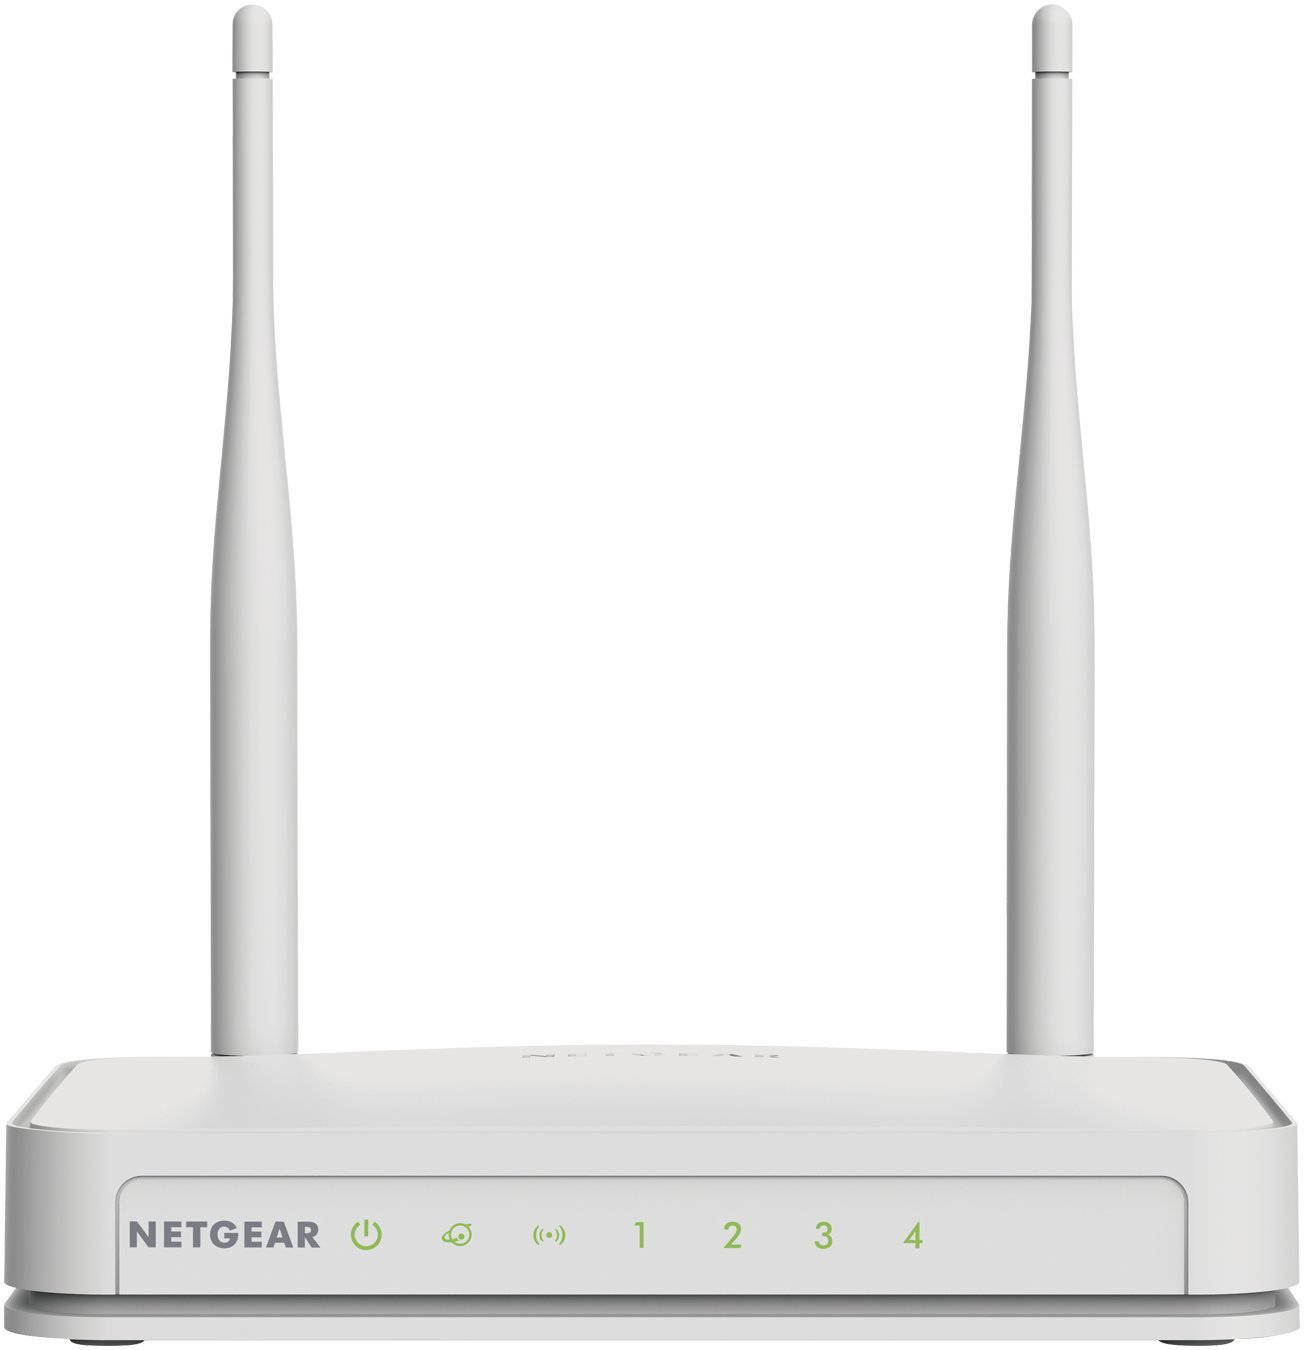 NETGEAR N300 Wi-Fi Router with High Power 5dBi External Antennas–(35% Off)